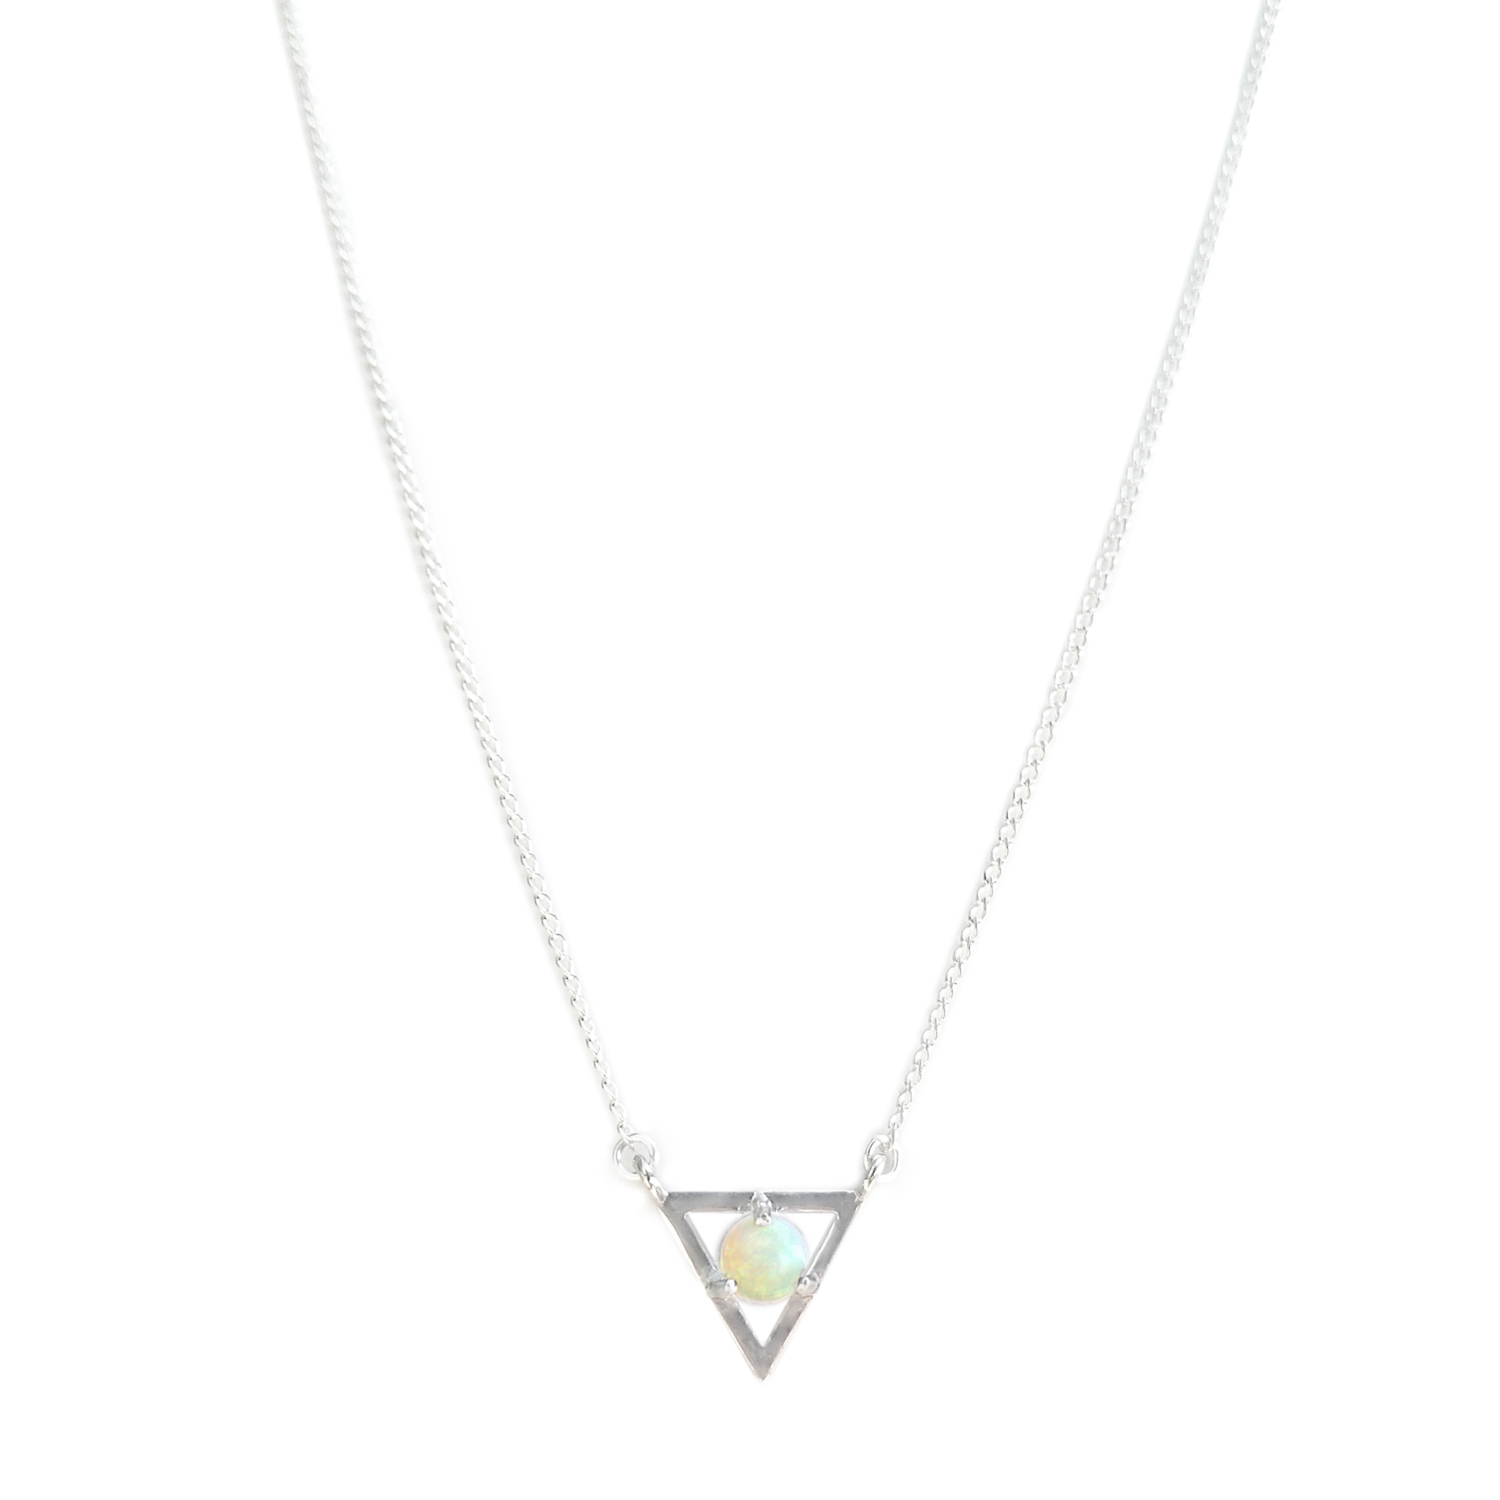 necklace gift simply card silver zoom opal necklaces a sterling birthstone white on october jewellery